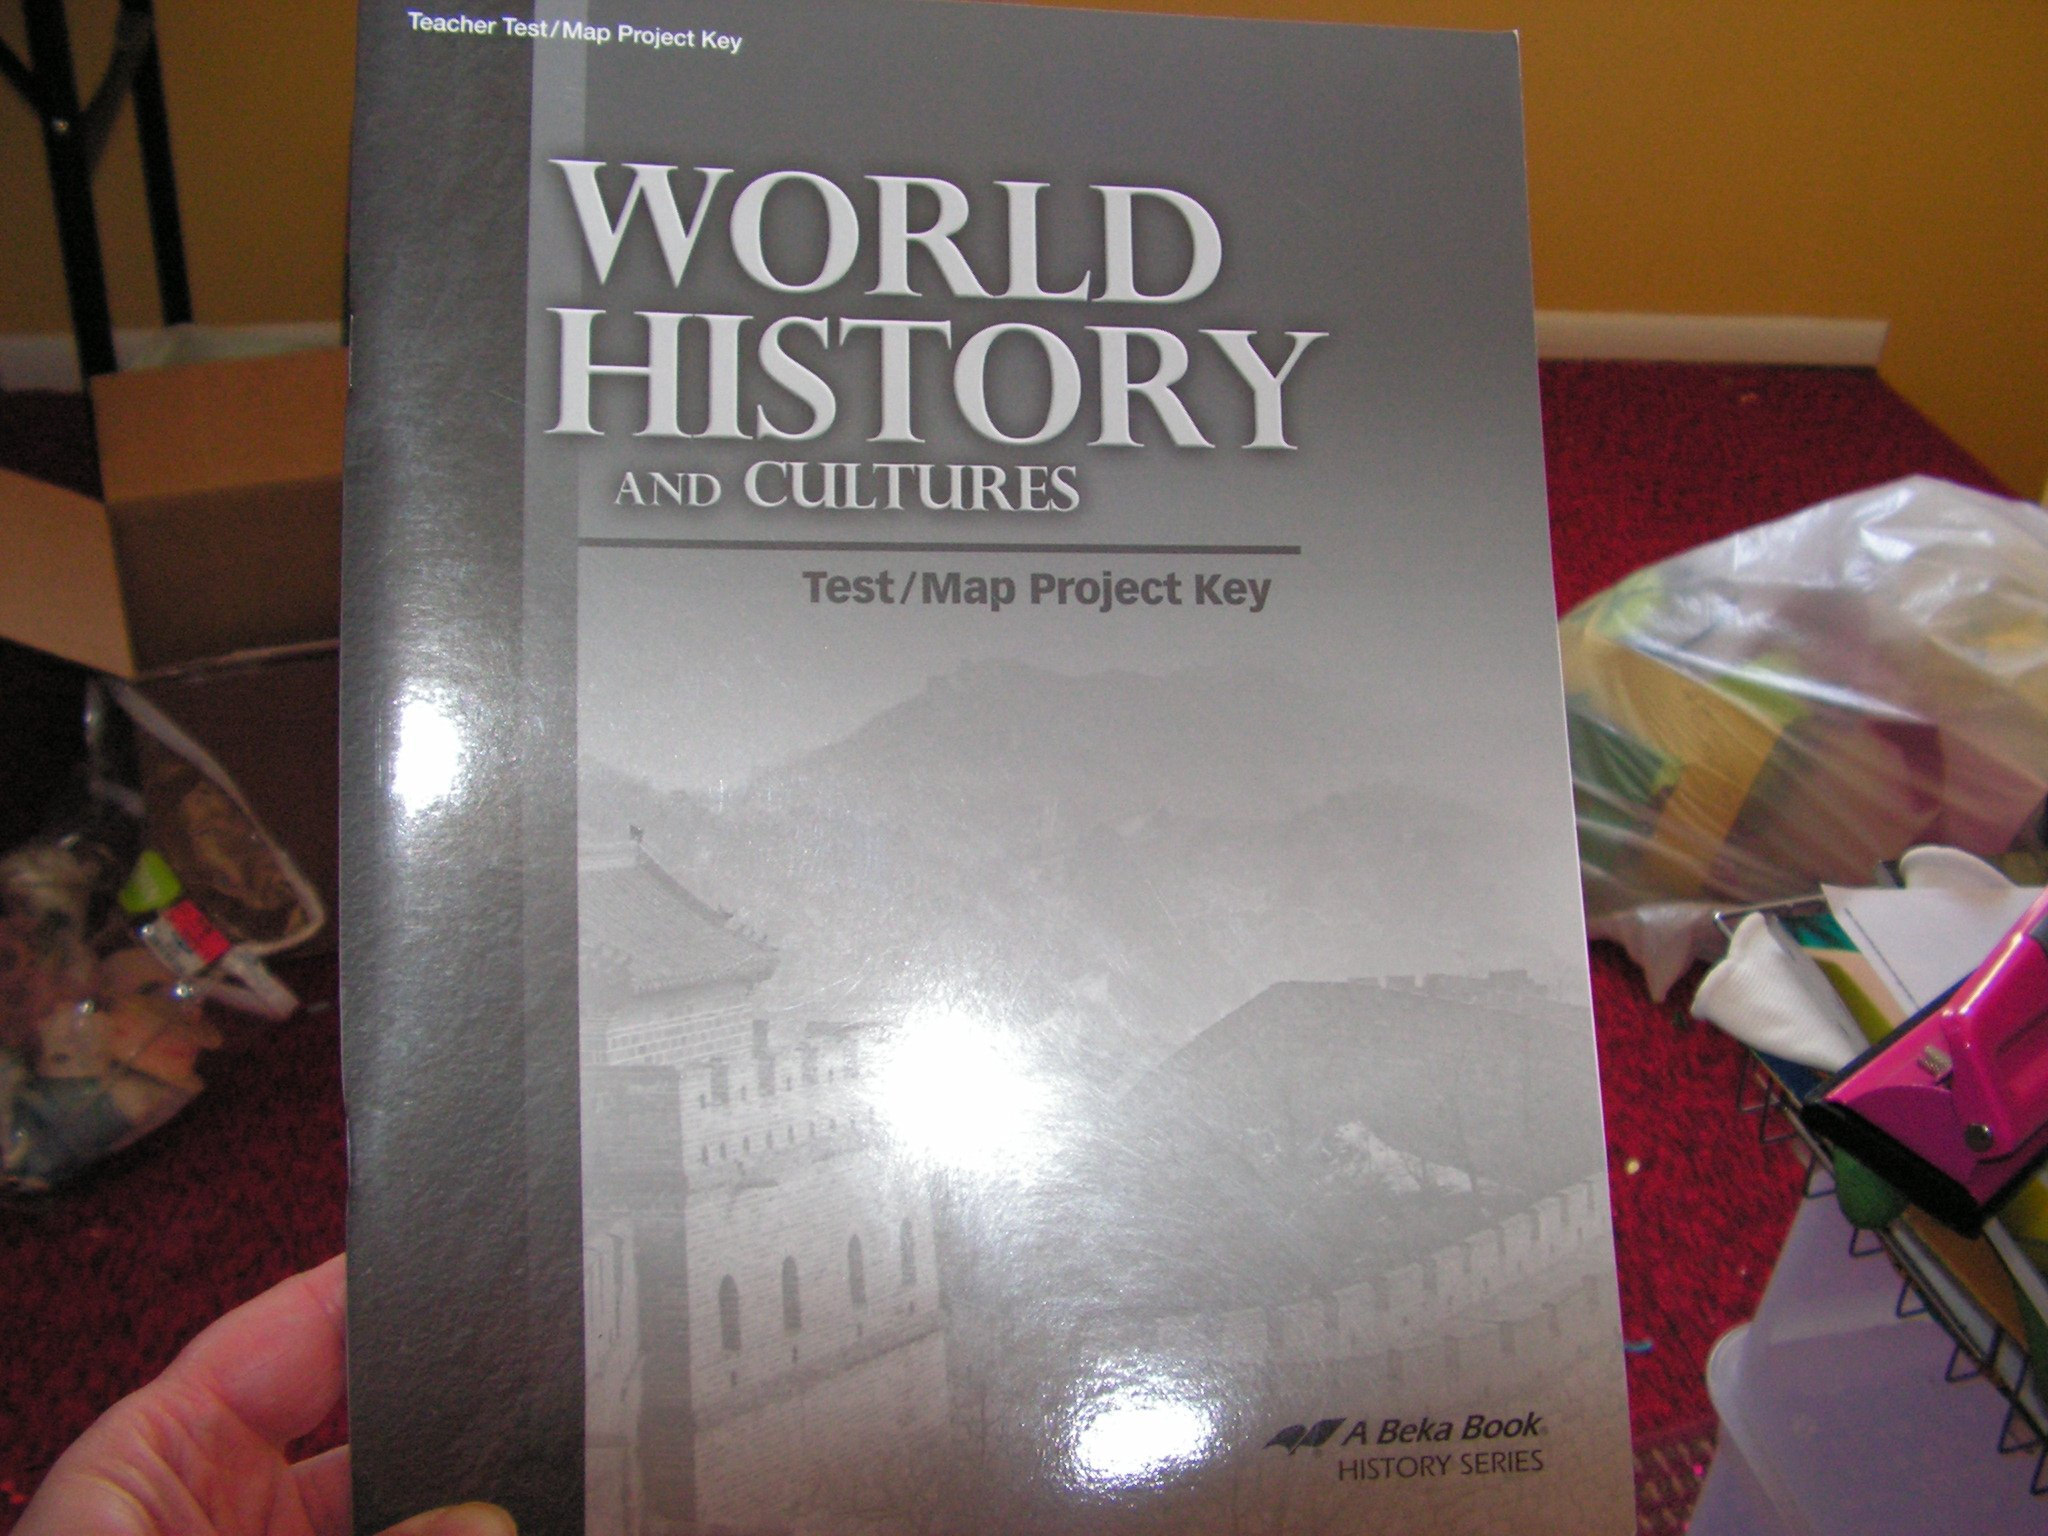 World history and cultures testmap project key a beka amazon world history and cultures testmap project key a beka amazon books gumiabroncs Gallery